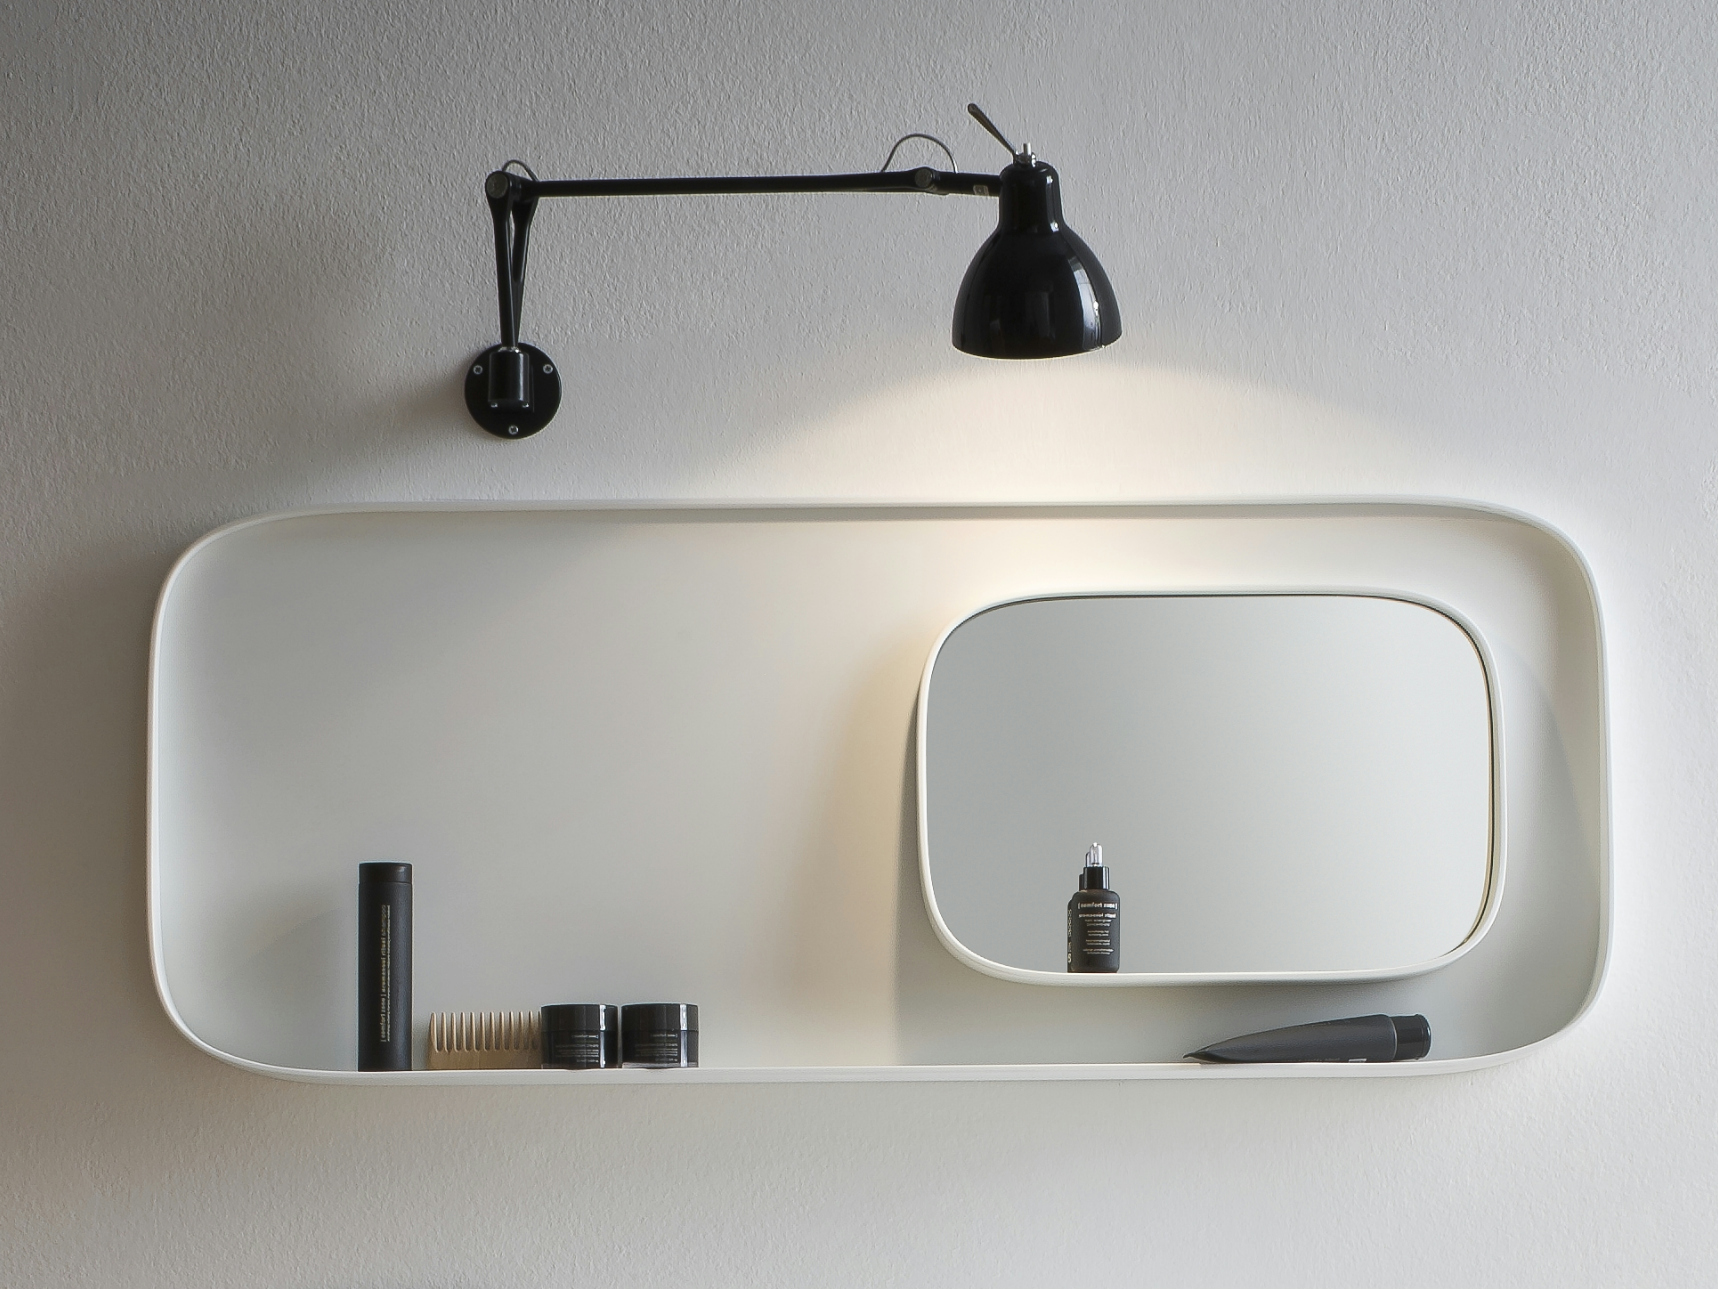 Fonte bathroom mirror by rexa design design monica graffeo for Mirror design